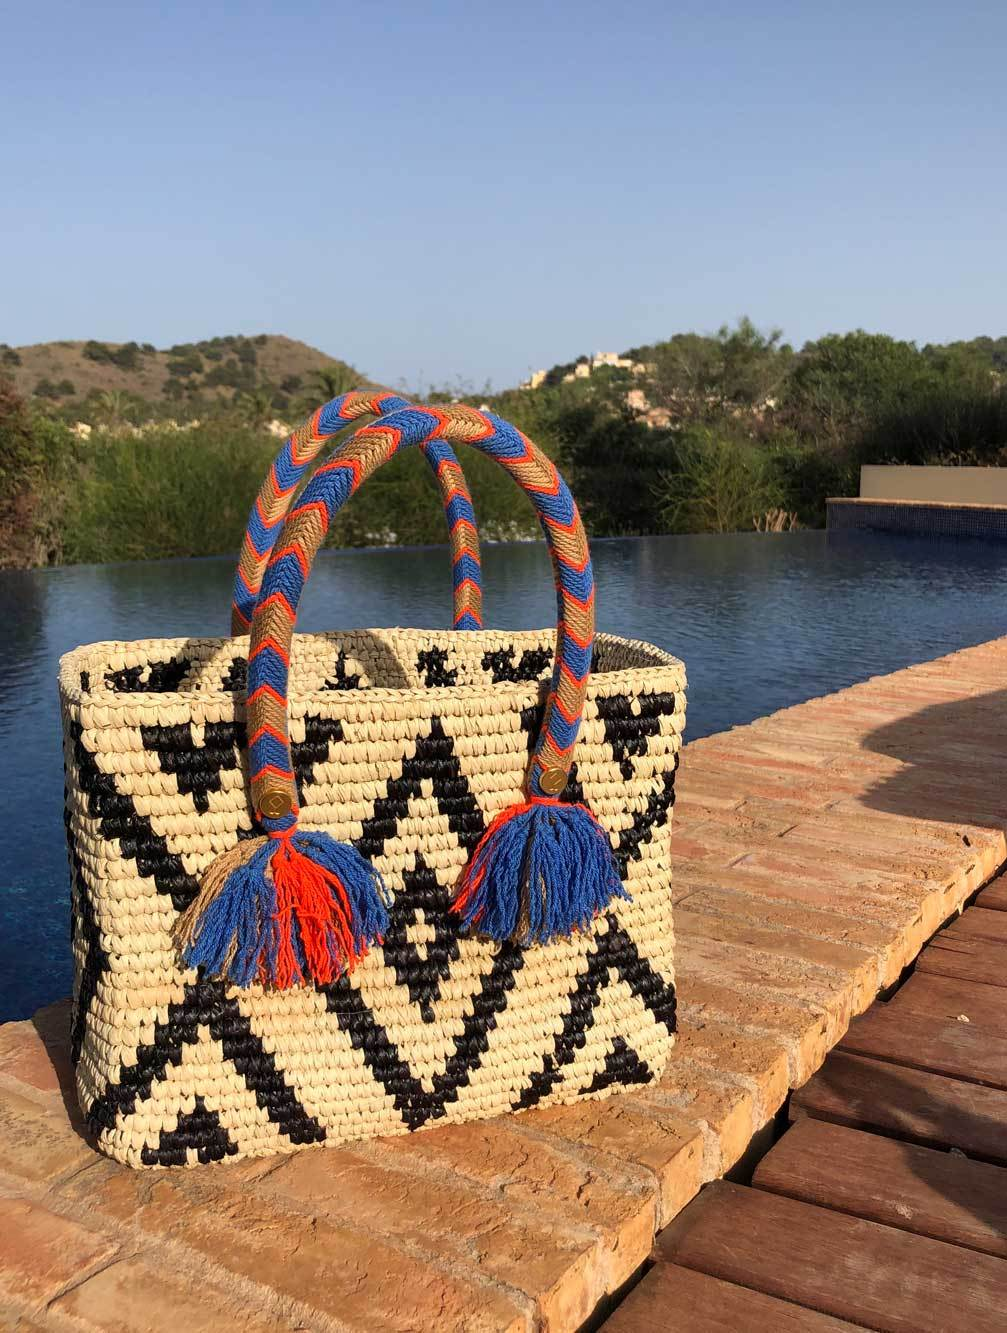 YOSUZI-Amaris-bag-model-woven-luxury-beachwear-resortwear-uk-kaia-london-1